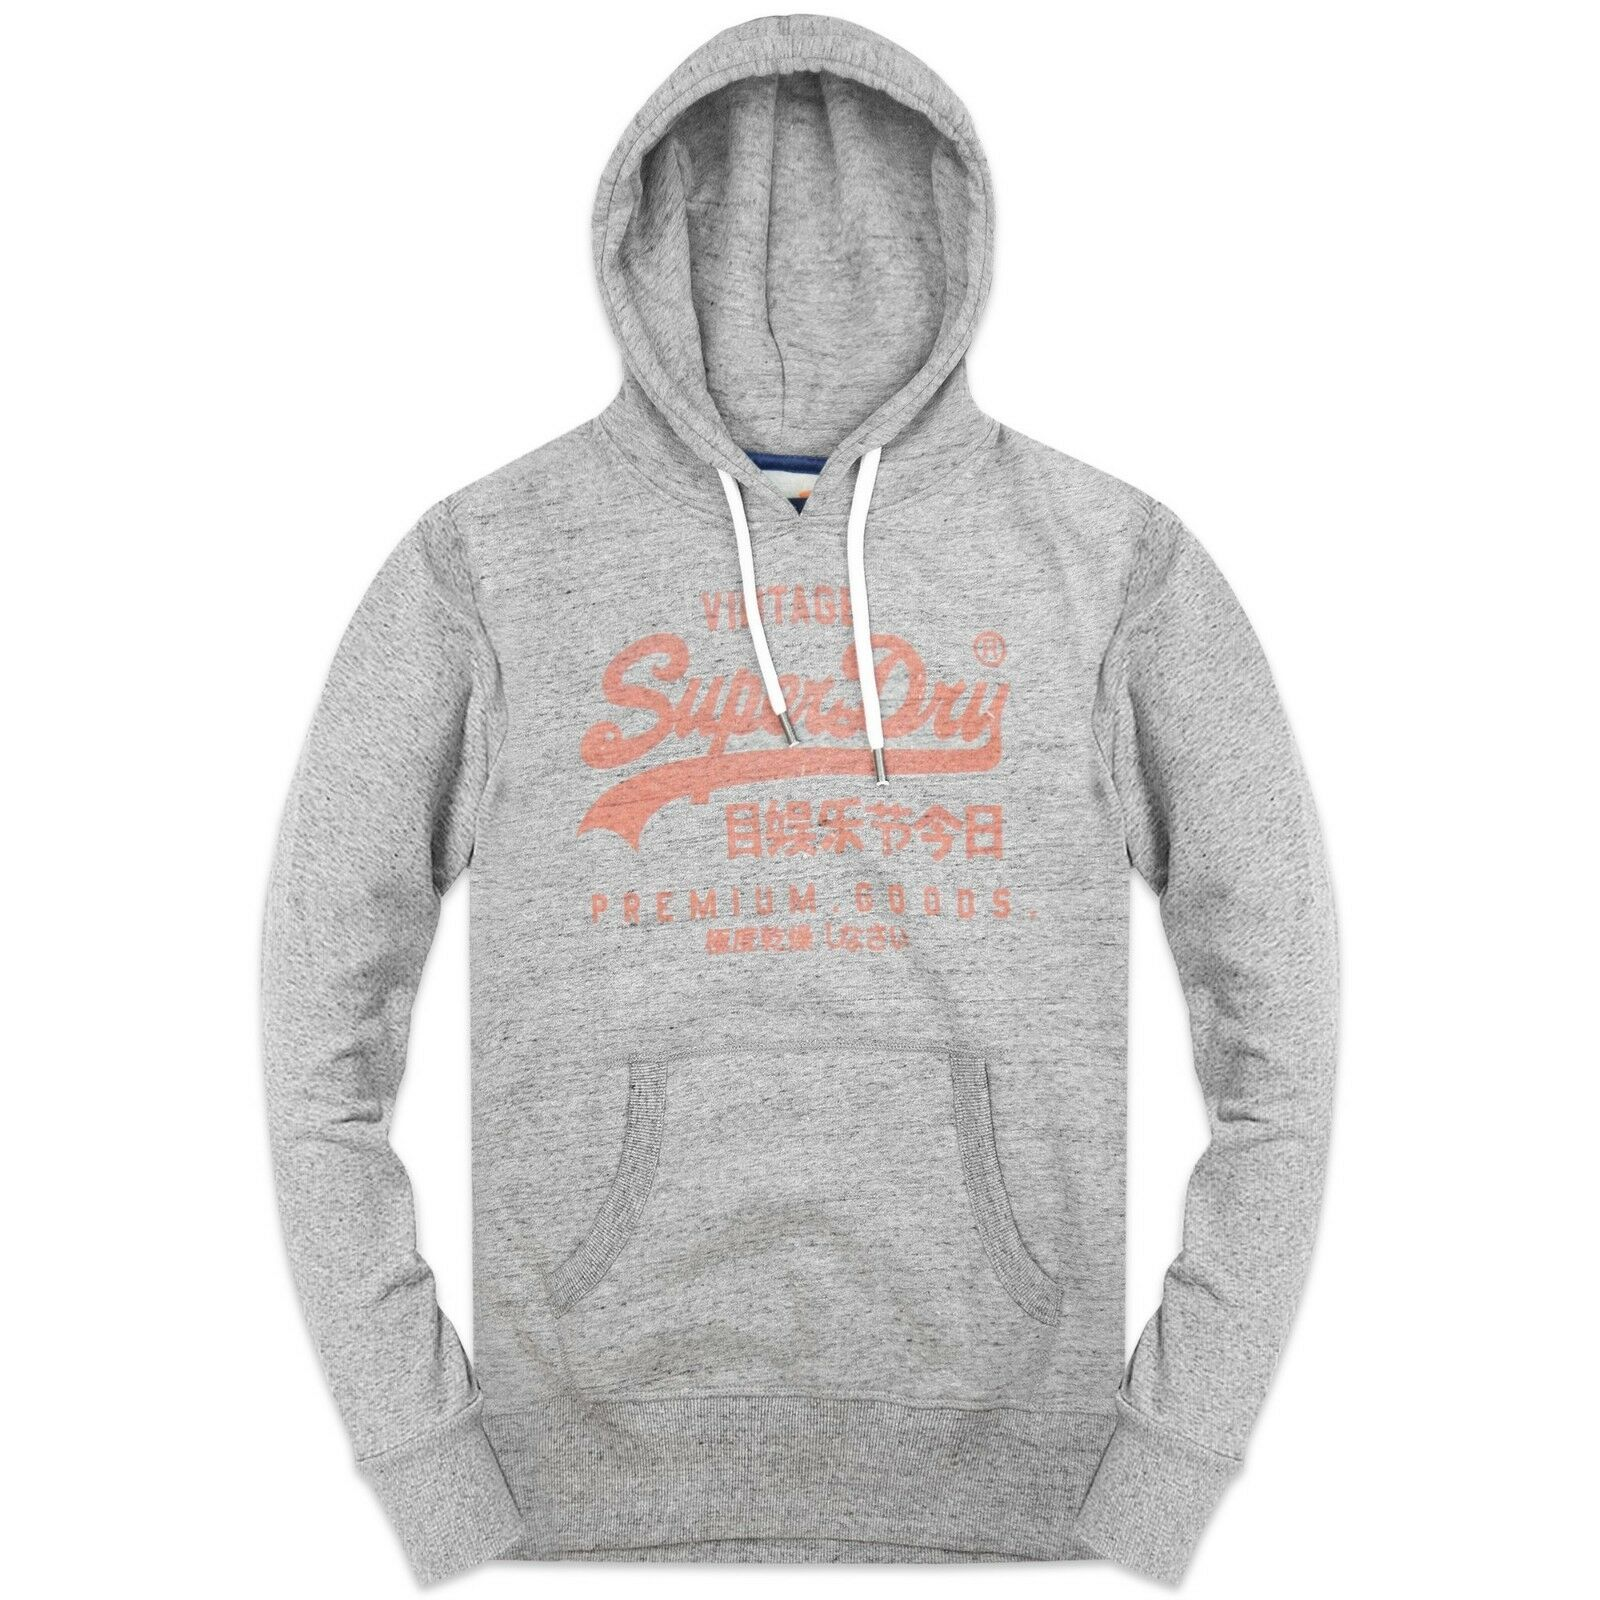 Superdry Hoodies - Superdry Premium Goods Hoodies - - - grau, Grün - M20000NR    | Internationale Wahl